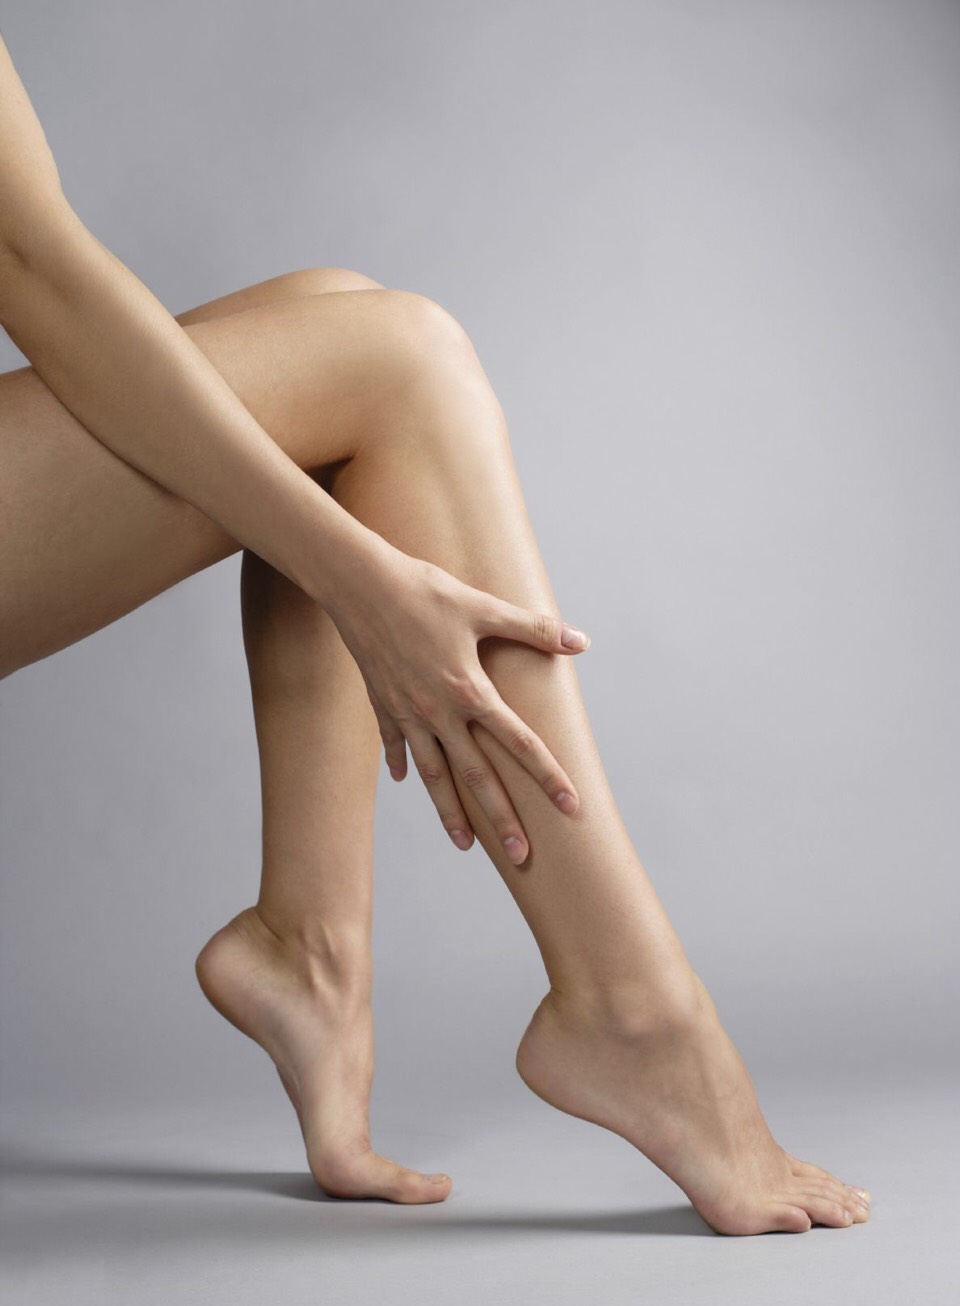 How to get ride of leg hair without shaving---->